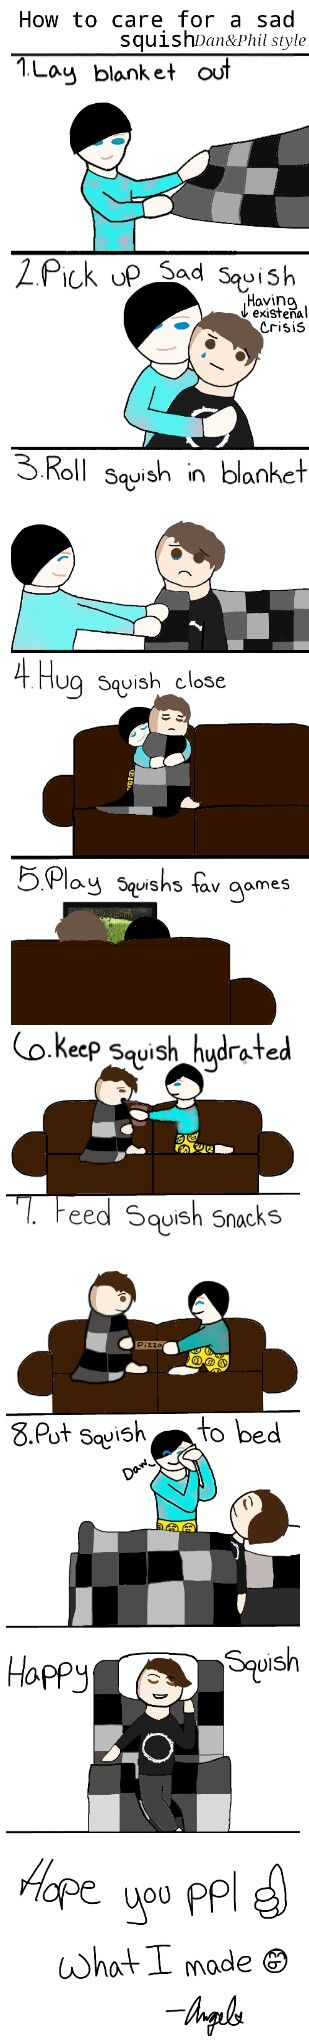 How to care for a sad squish Dan and Phil style by Angelfur Of LightClanClan